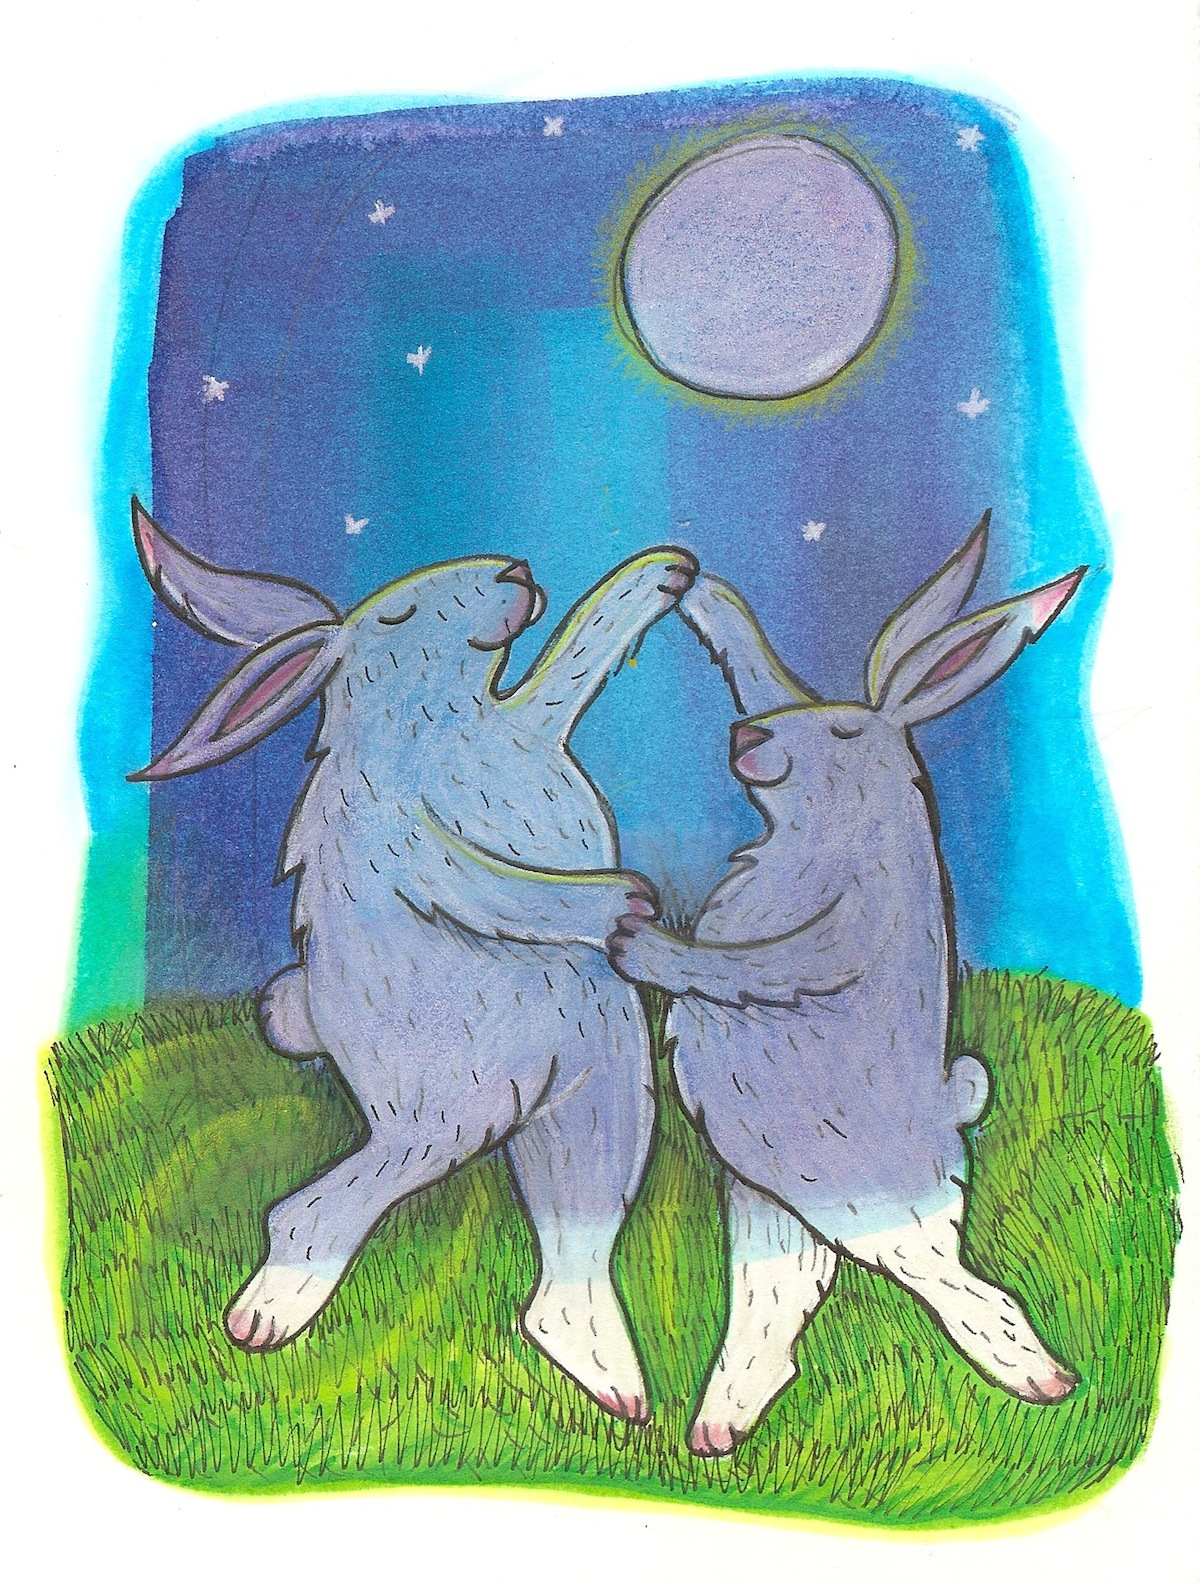 dancing under the full moon